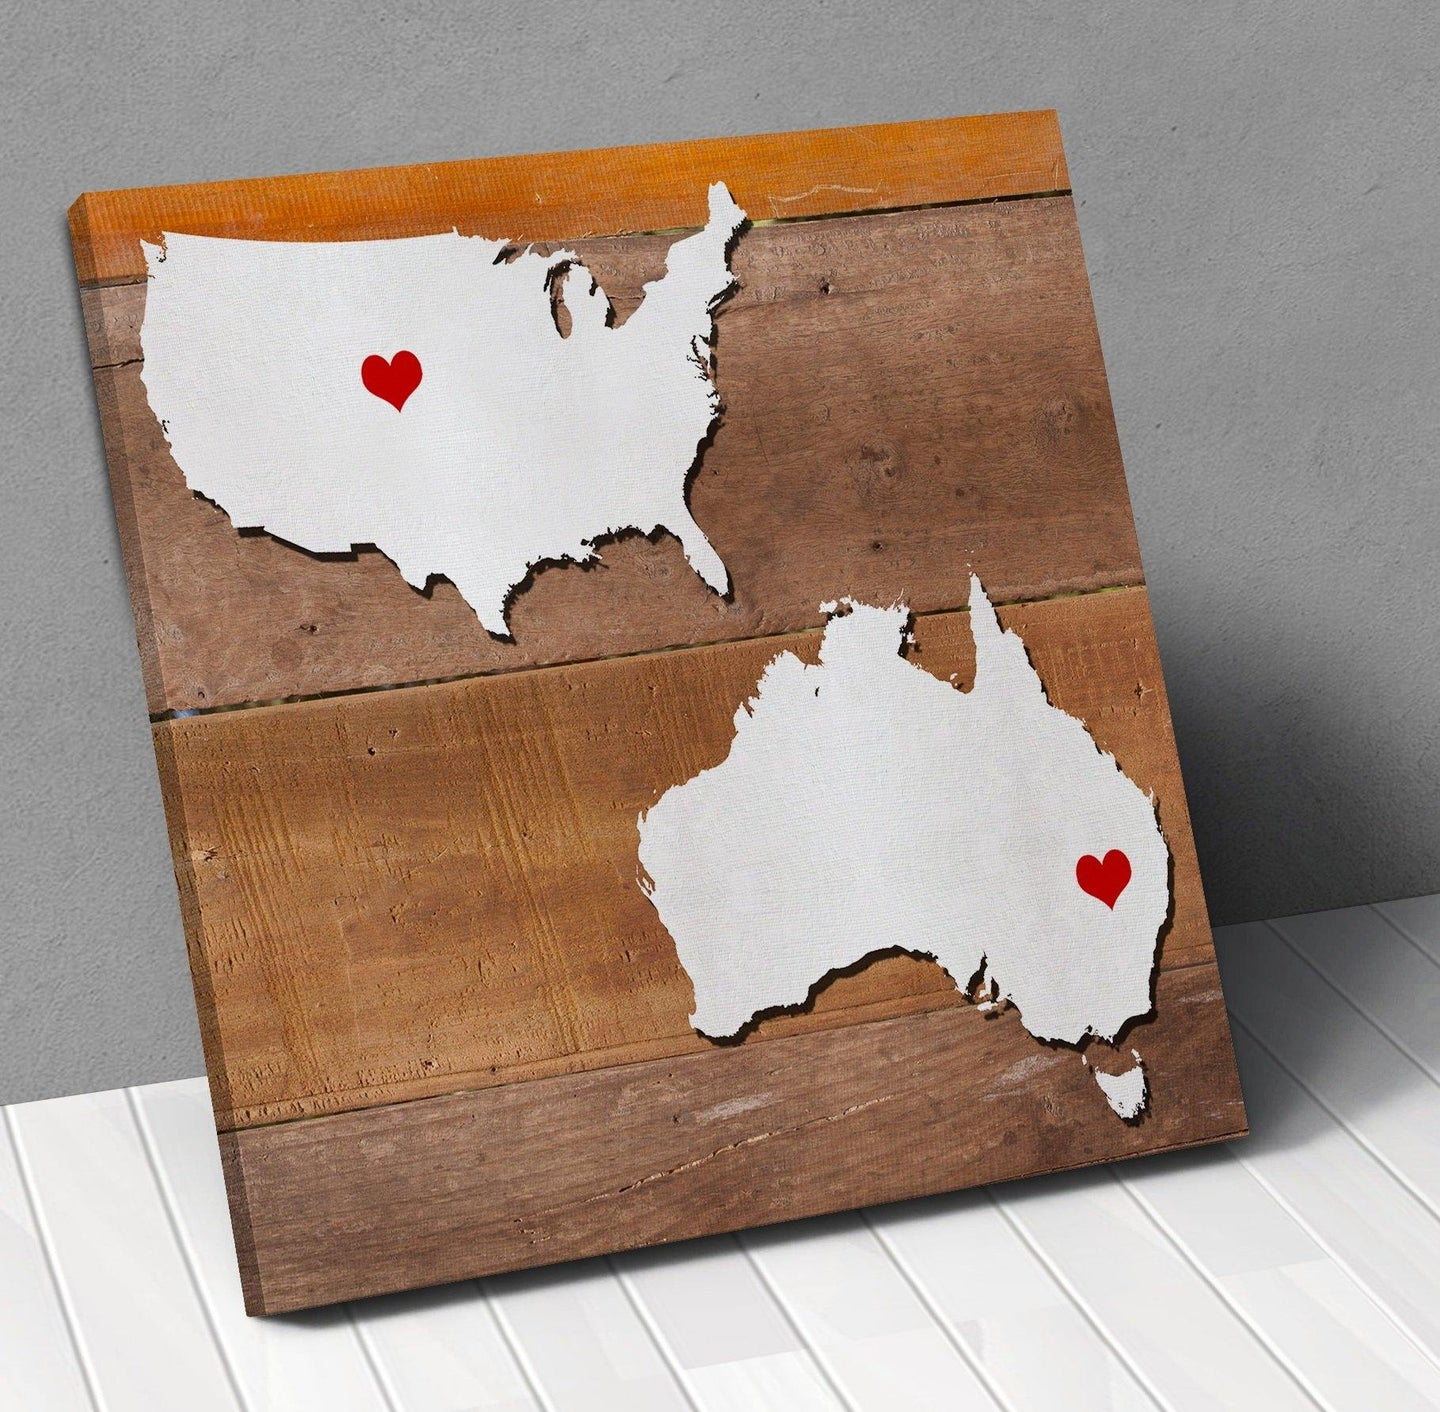 Personalized Usa Map.Australia Usa Map Personalized With City Hearts Canvas Wall Art